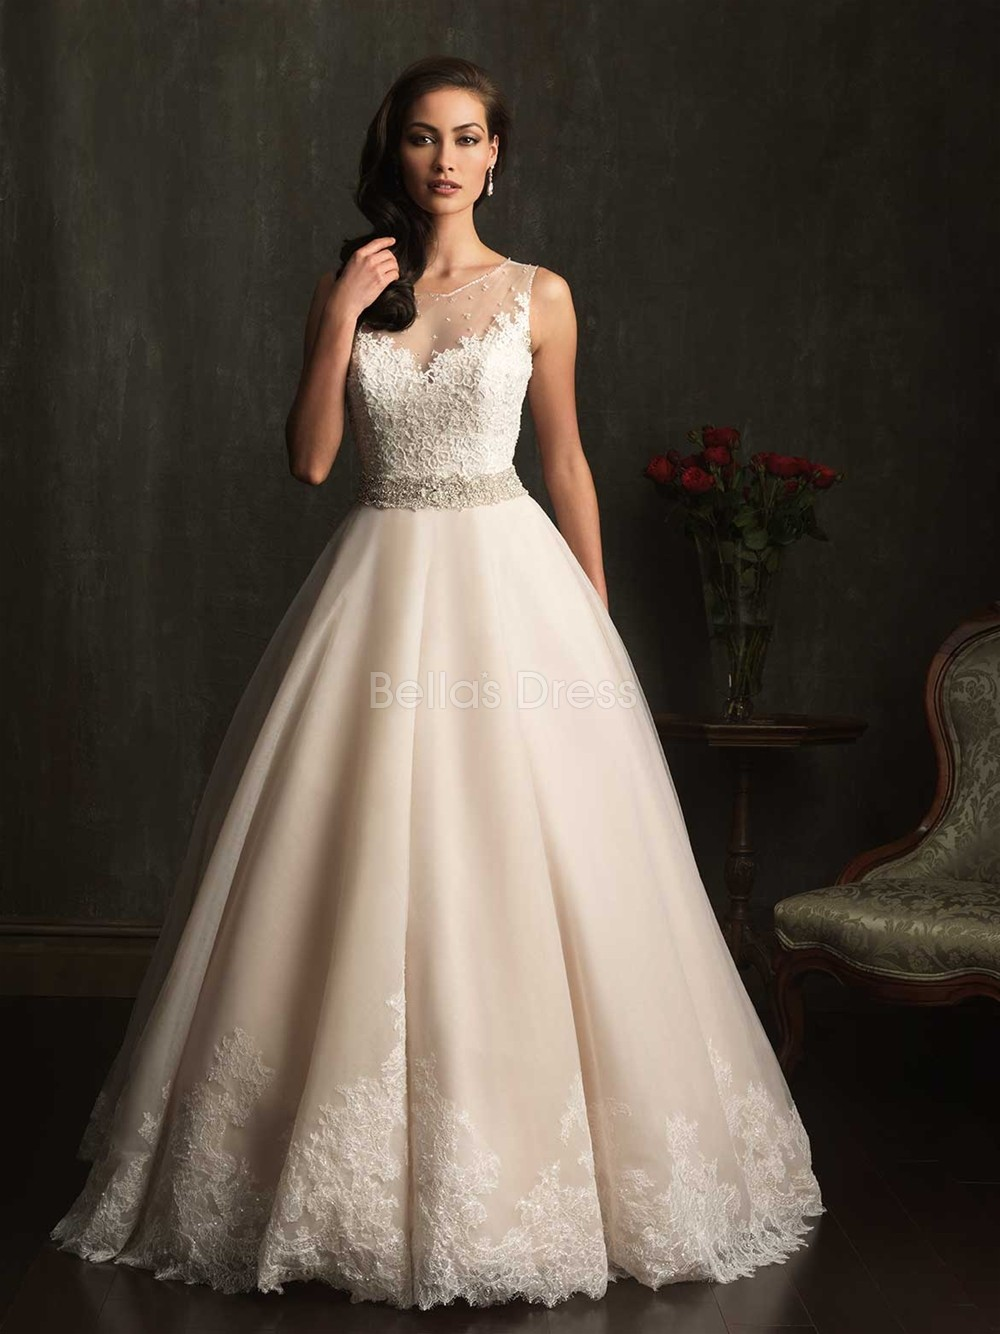 Lace ball gown wedding dress with chapel traincherry marry for Marry me wedding dresses